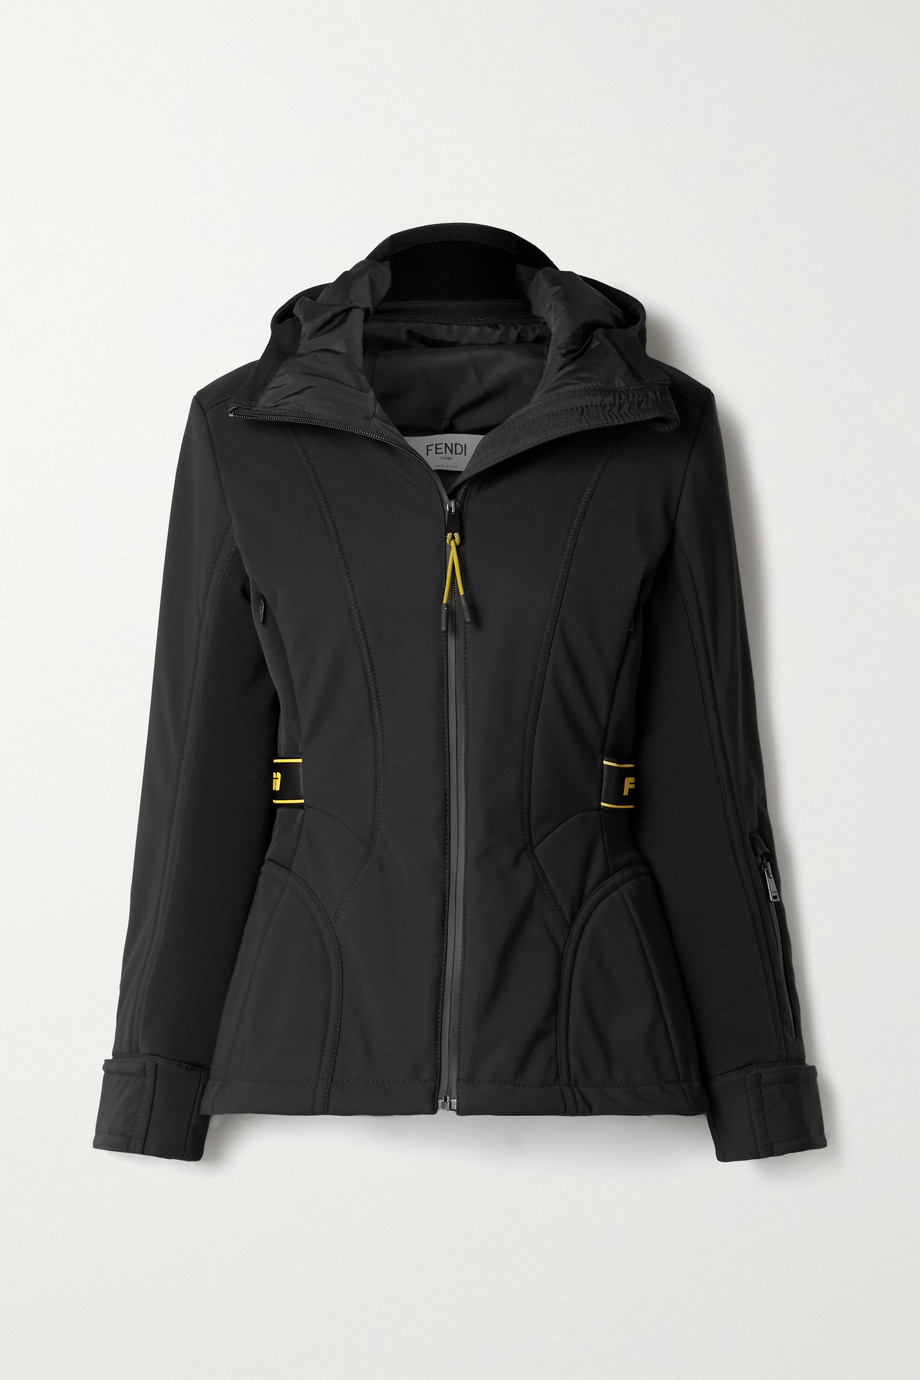 Fendi Rubber-trimmed paneled hooded ski jacket